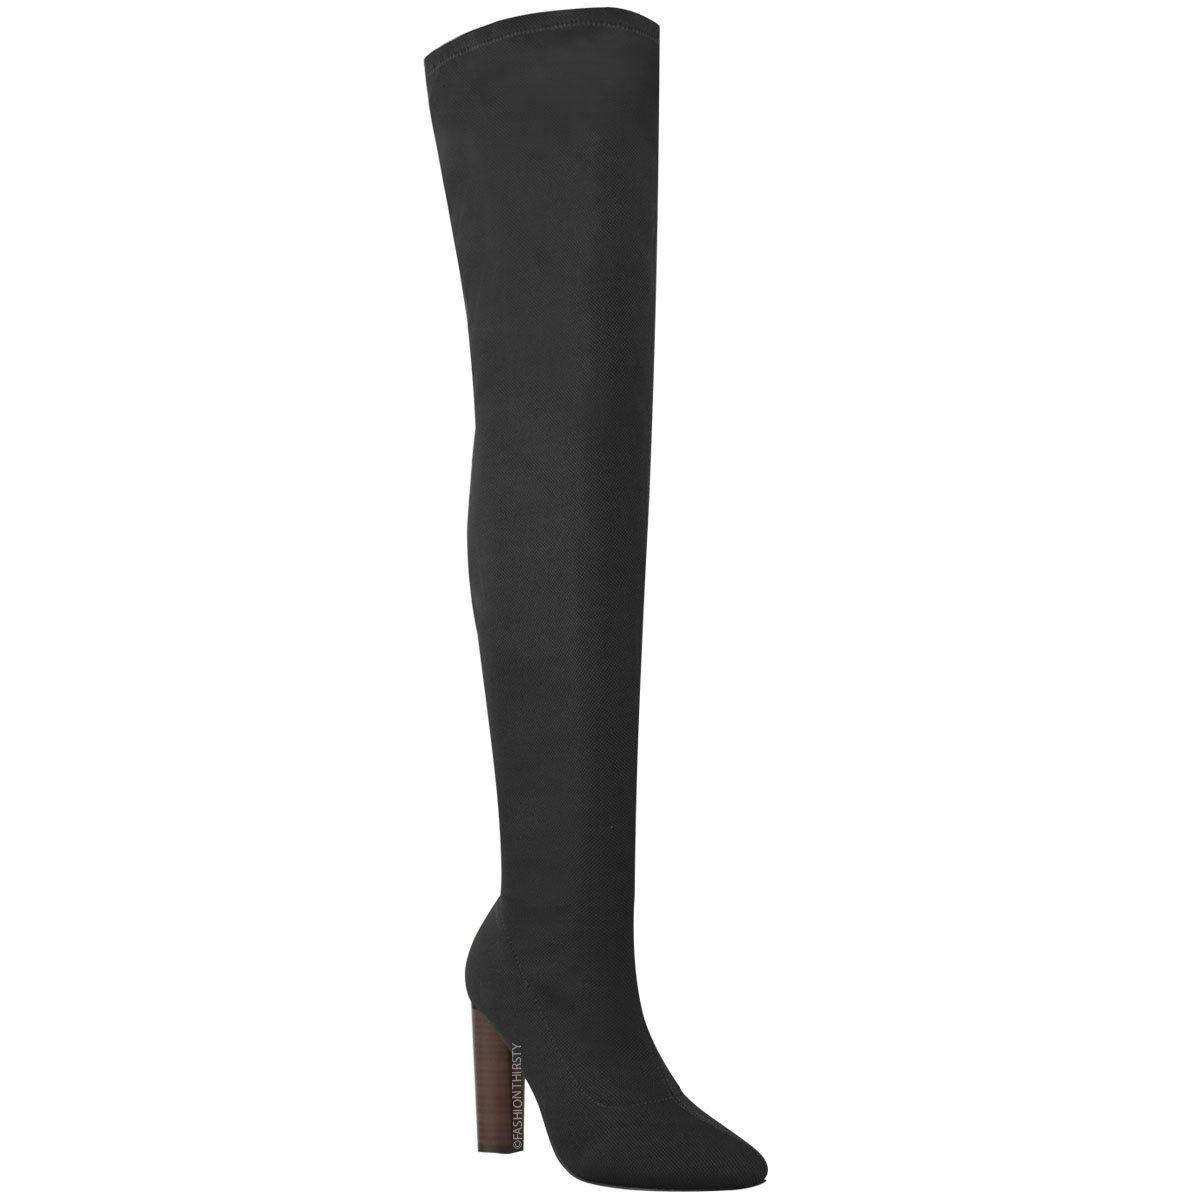 61cd0d75f93 Womens Ladies Thigh High Stretch Knit Boots Over The Knee Celeb High ...